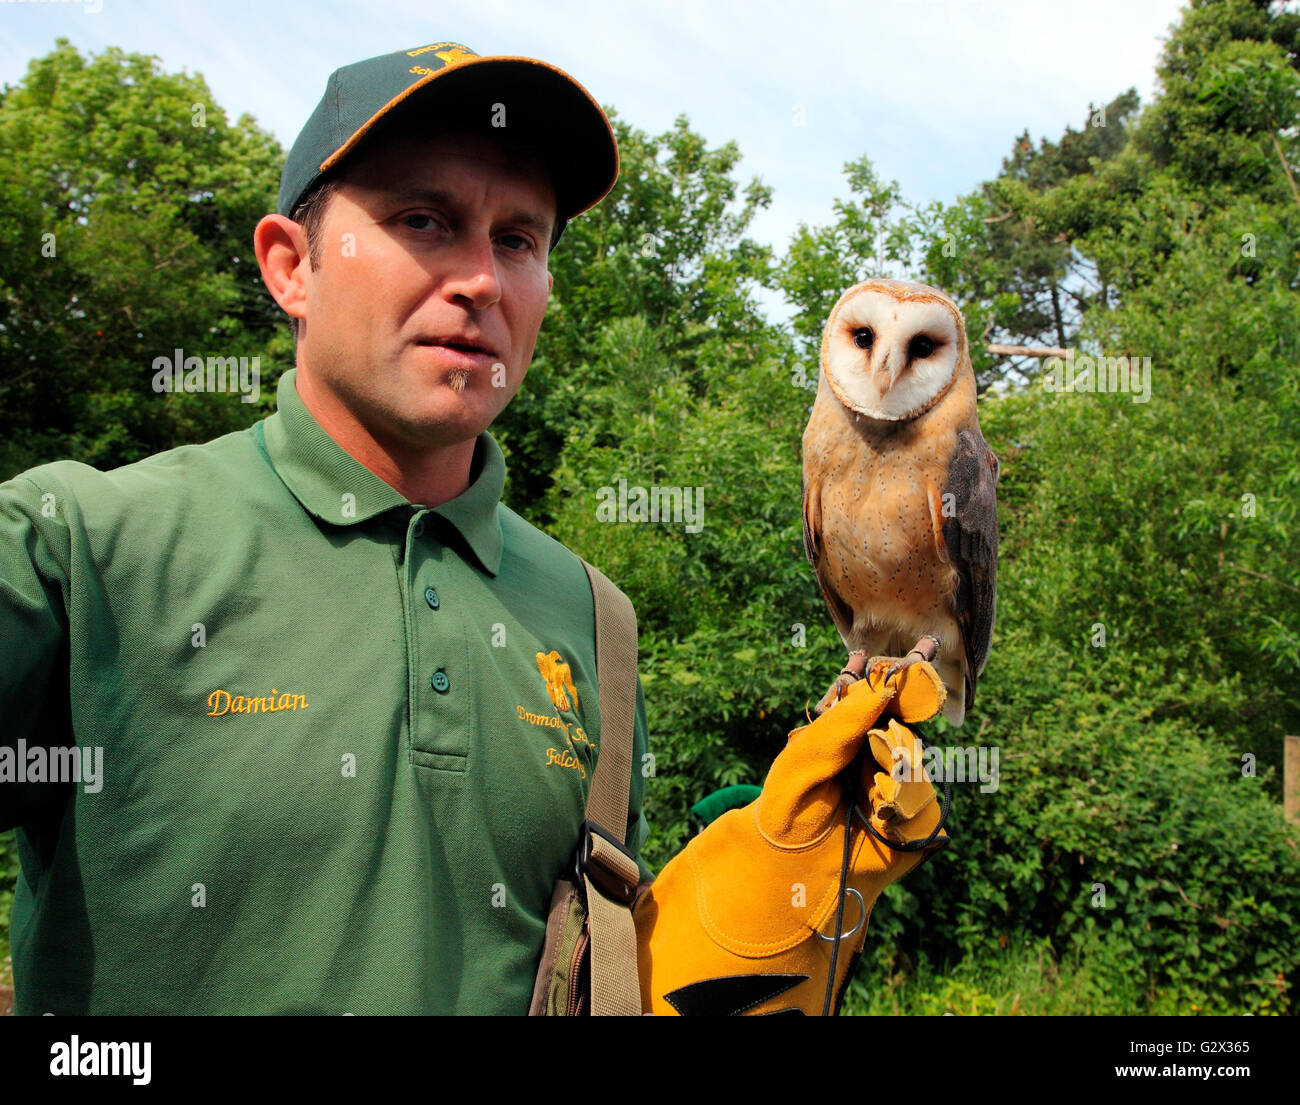 Damian and Pickles, Dromoland School of Falconry, Dromoland Castle - Stock Image